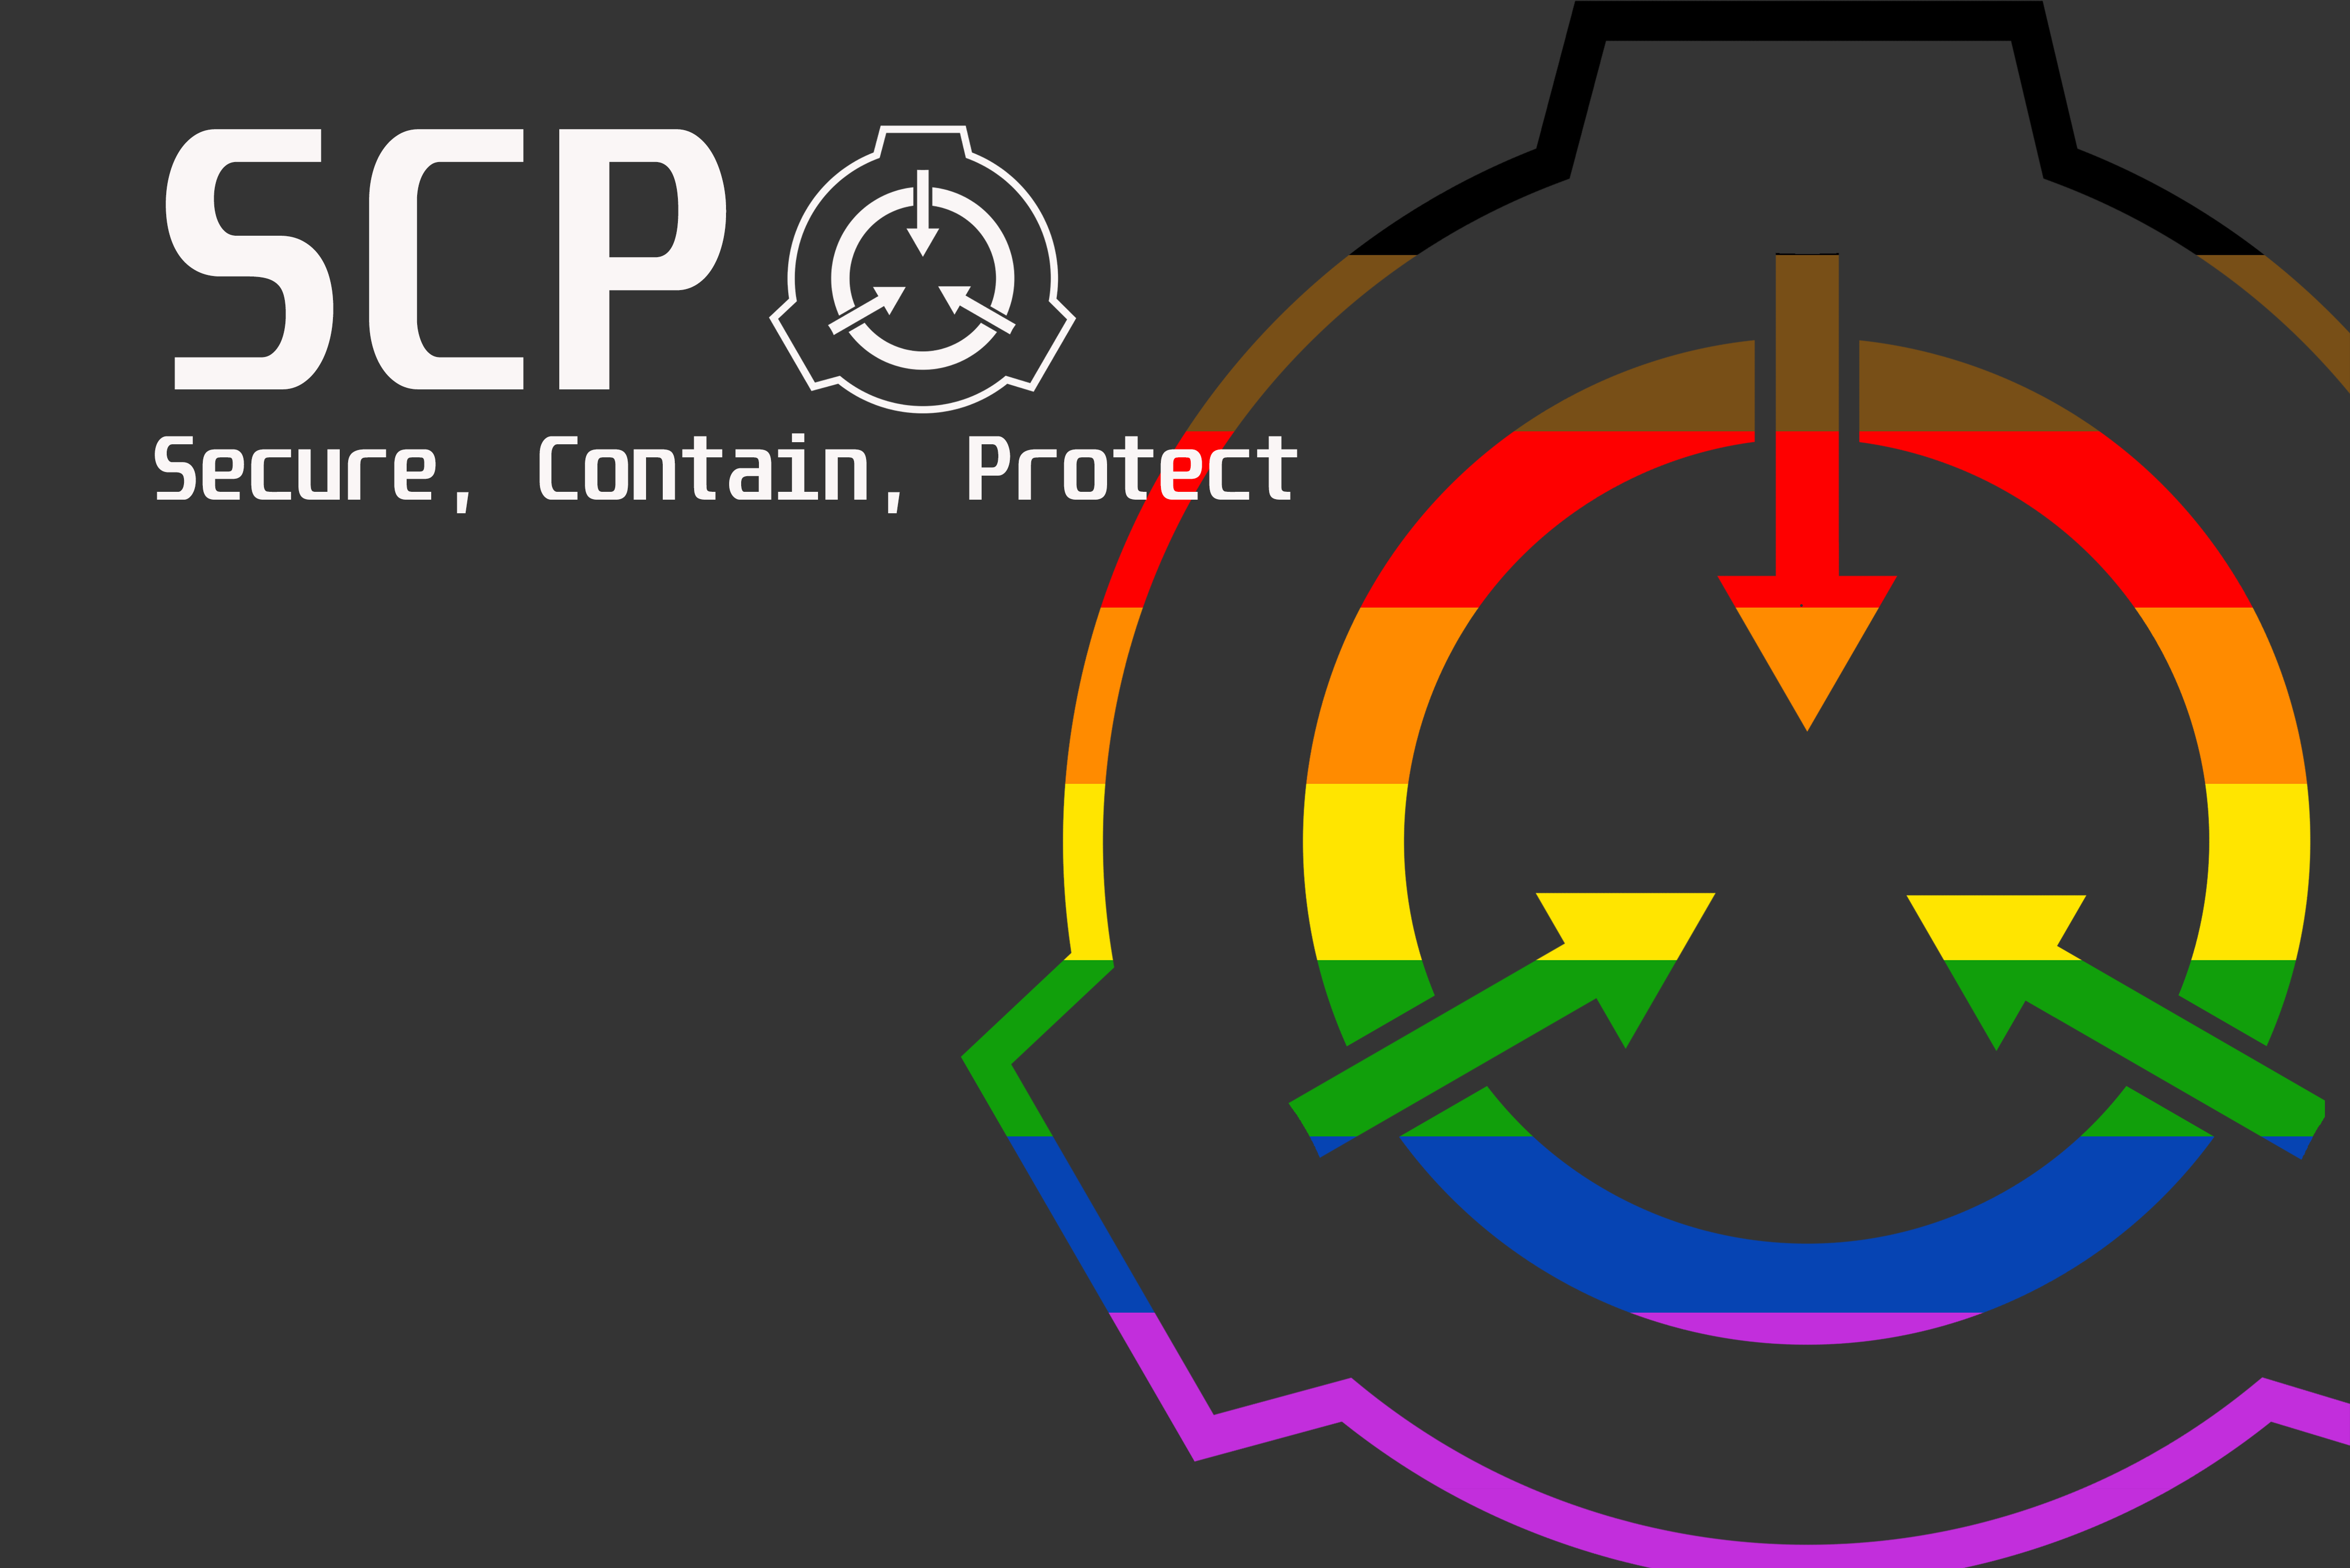 SCP-Ccard-Rainbow-08.png